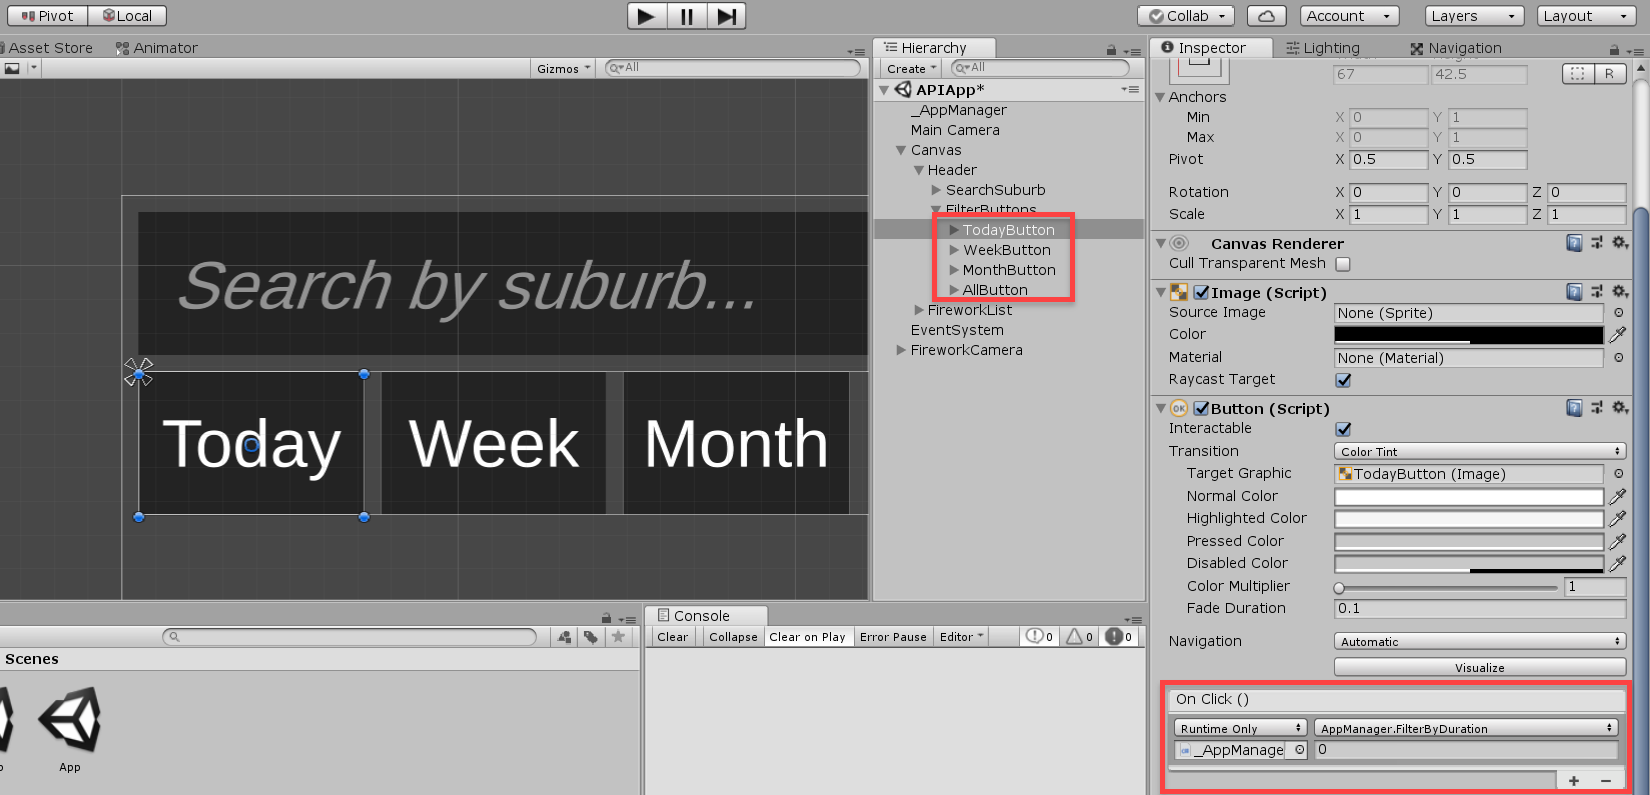 Highlighting of the On Click options for Unity buttons